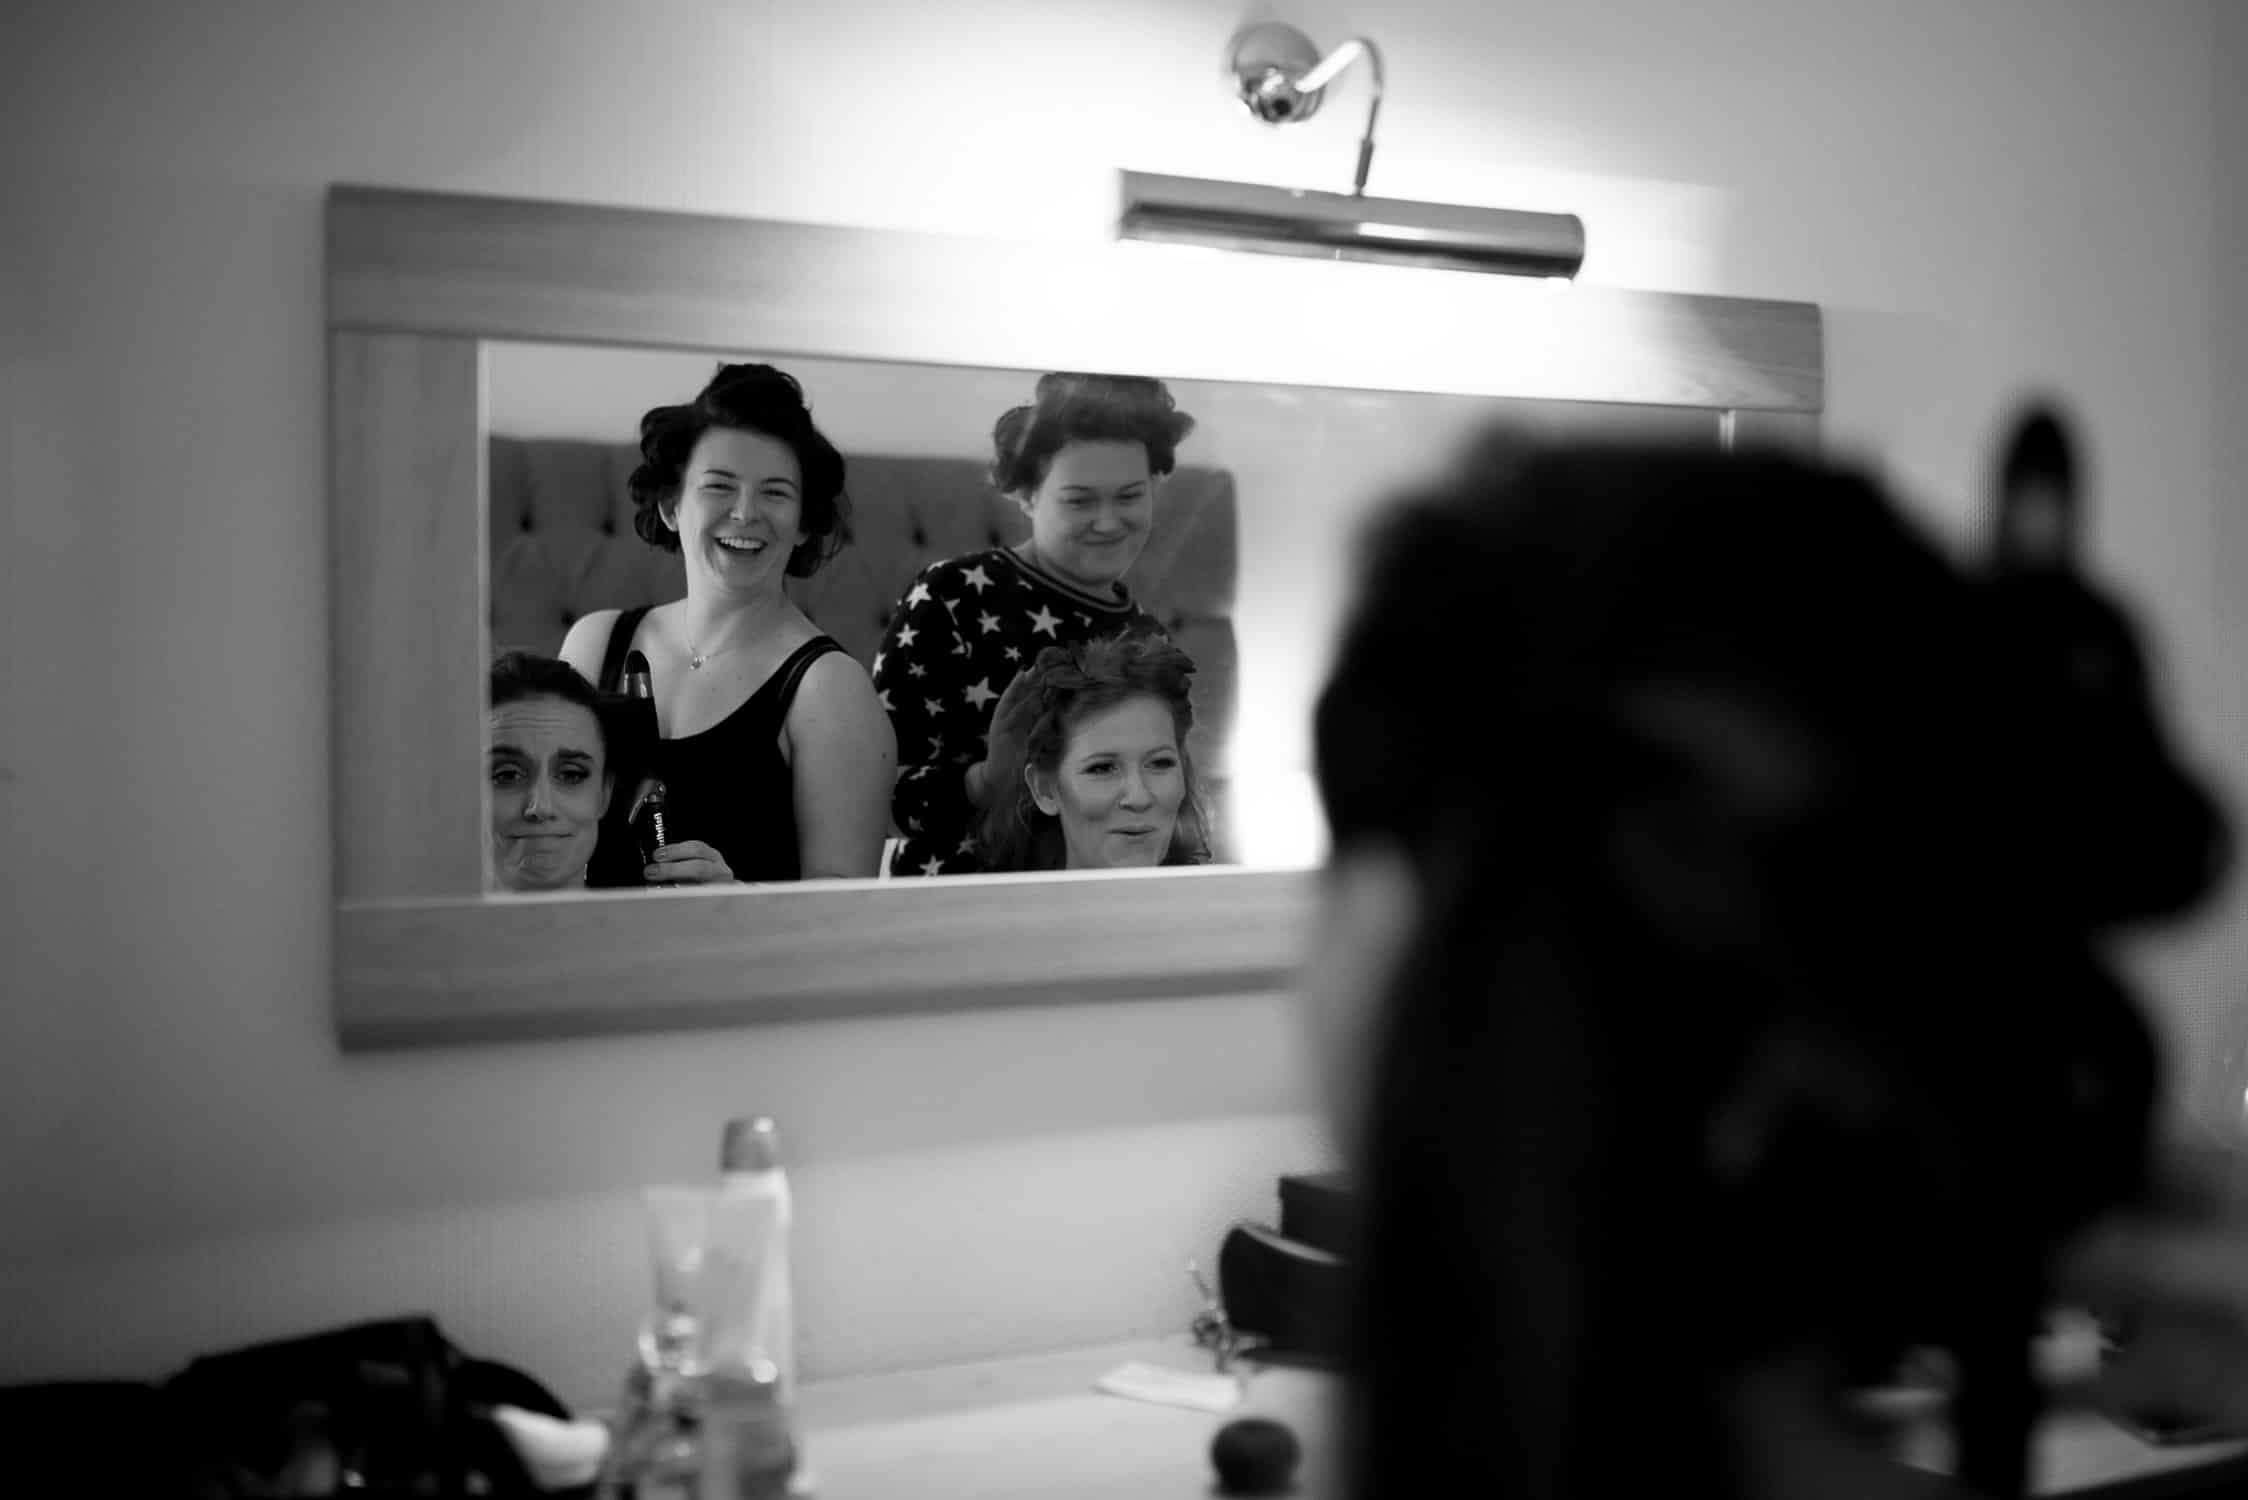 black and white image of bride and one of her bridesmaids pulling faces while another two bridesmaid smile at them in mirror's reflection